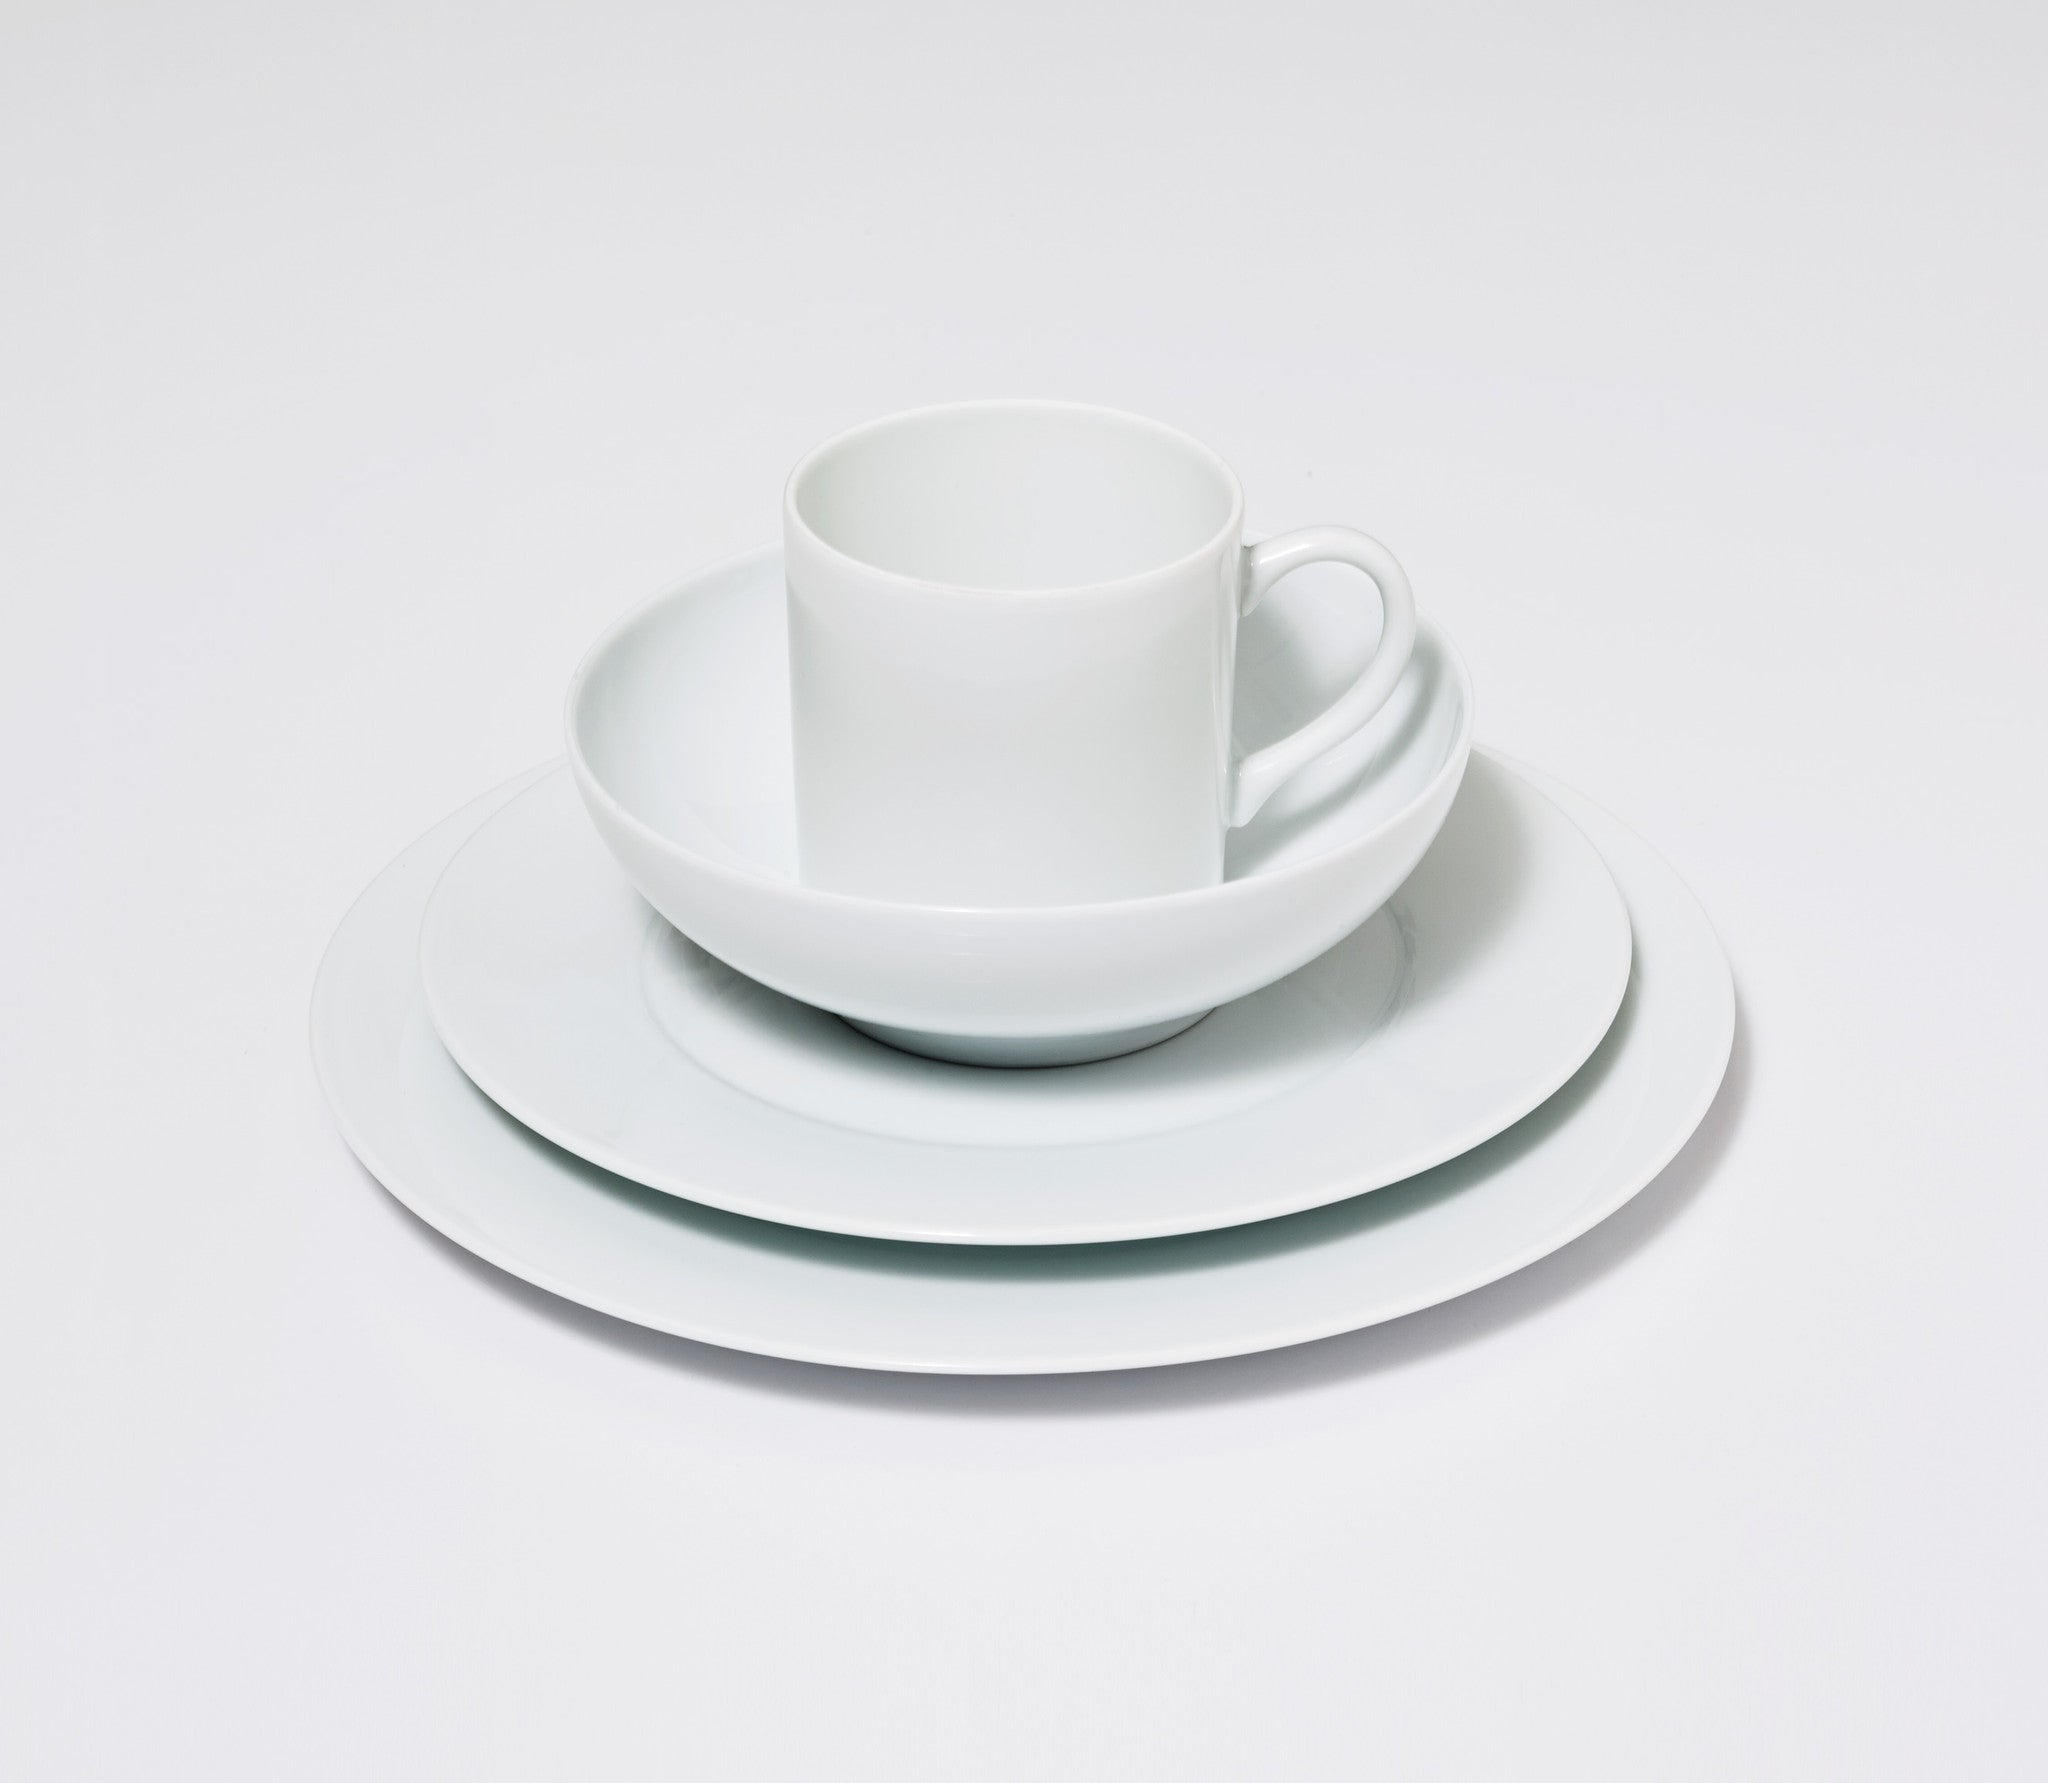 & 4-Piece Table Settings u2013 Snowe